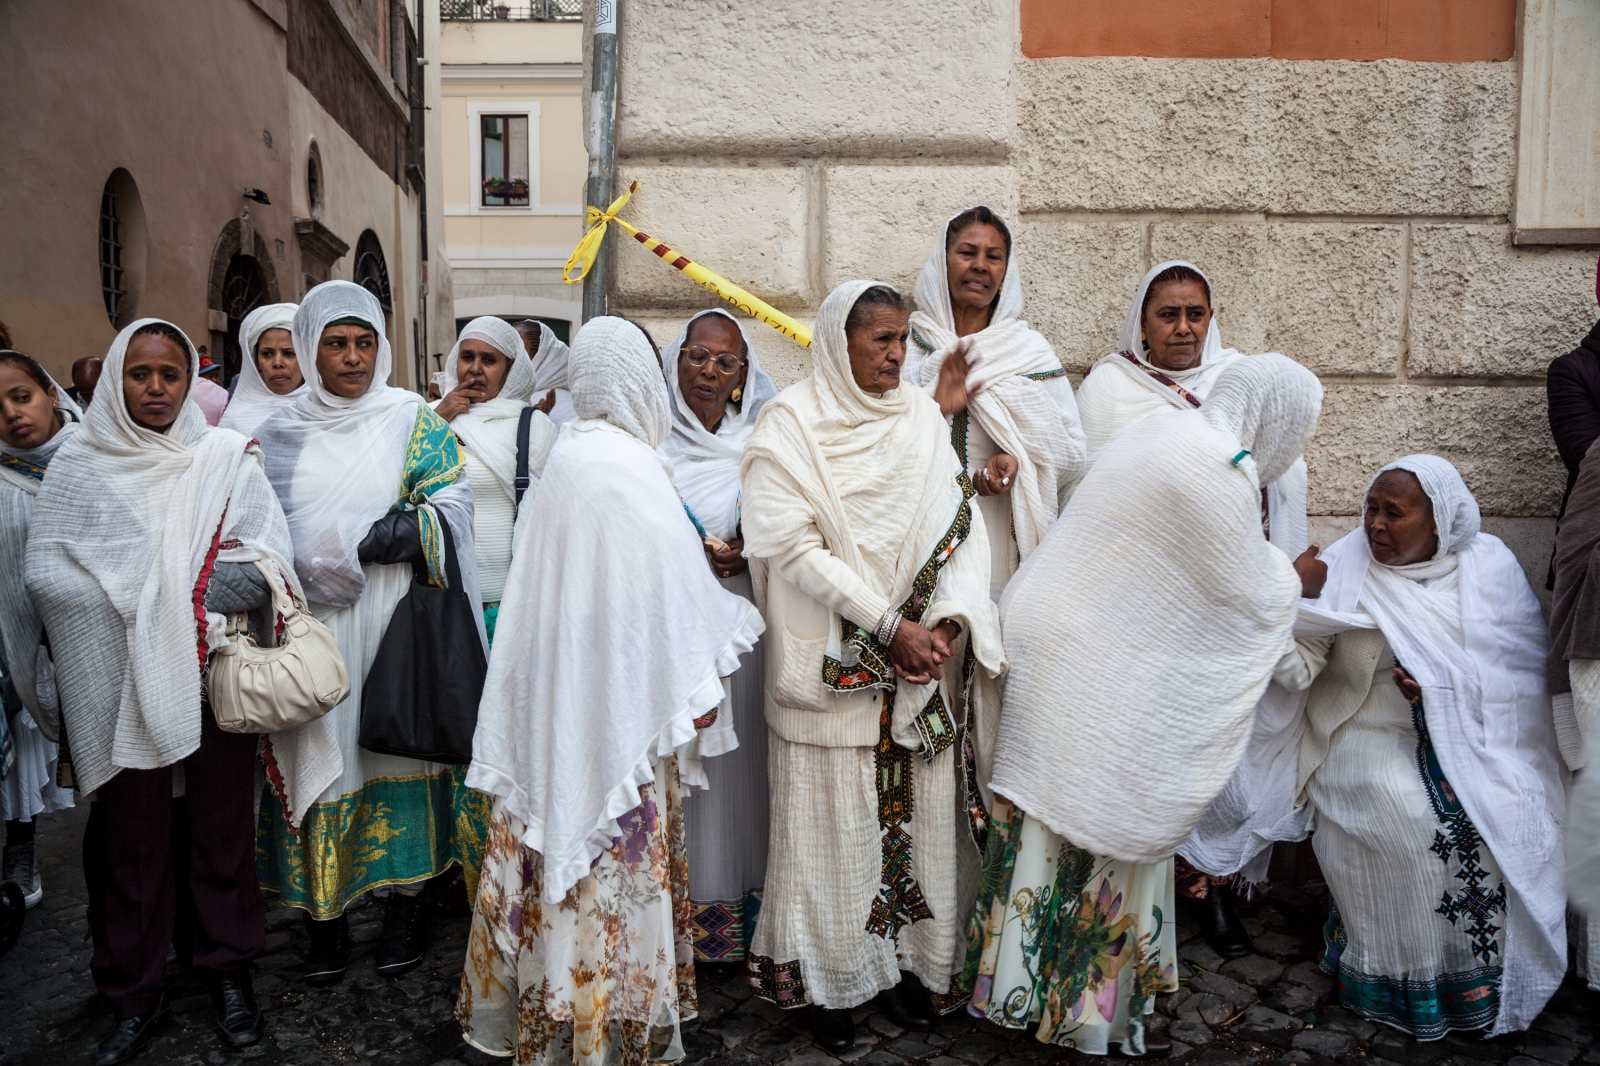 Eritrean and Ethiopian women talk outside the Eritrean Orthodox Tewahedo Church St. Michael's in downtown Rome, right around the corner from Campo de' Fiori, during the celebration for the patron saint of the community.